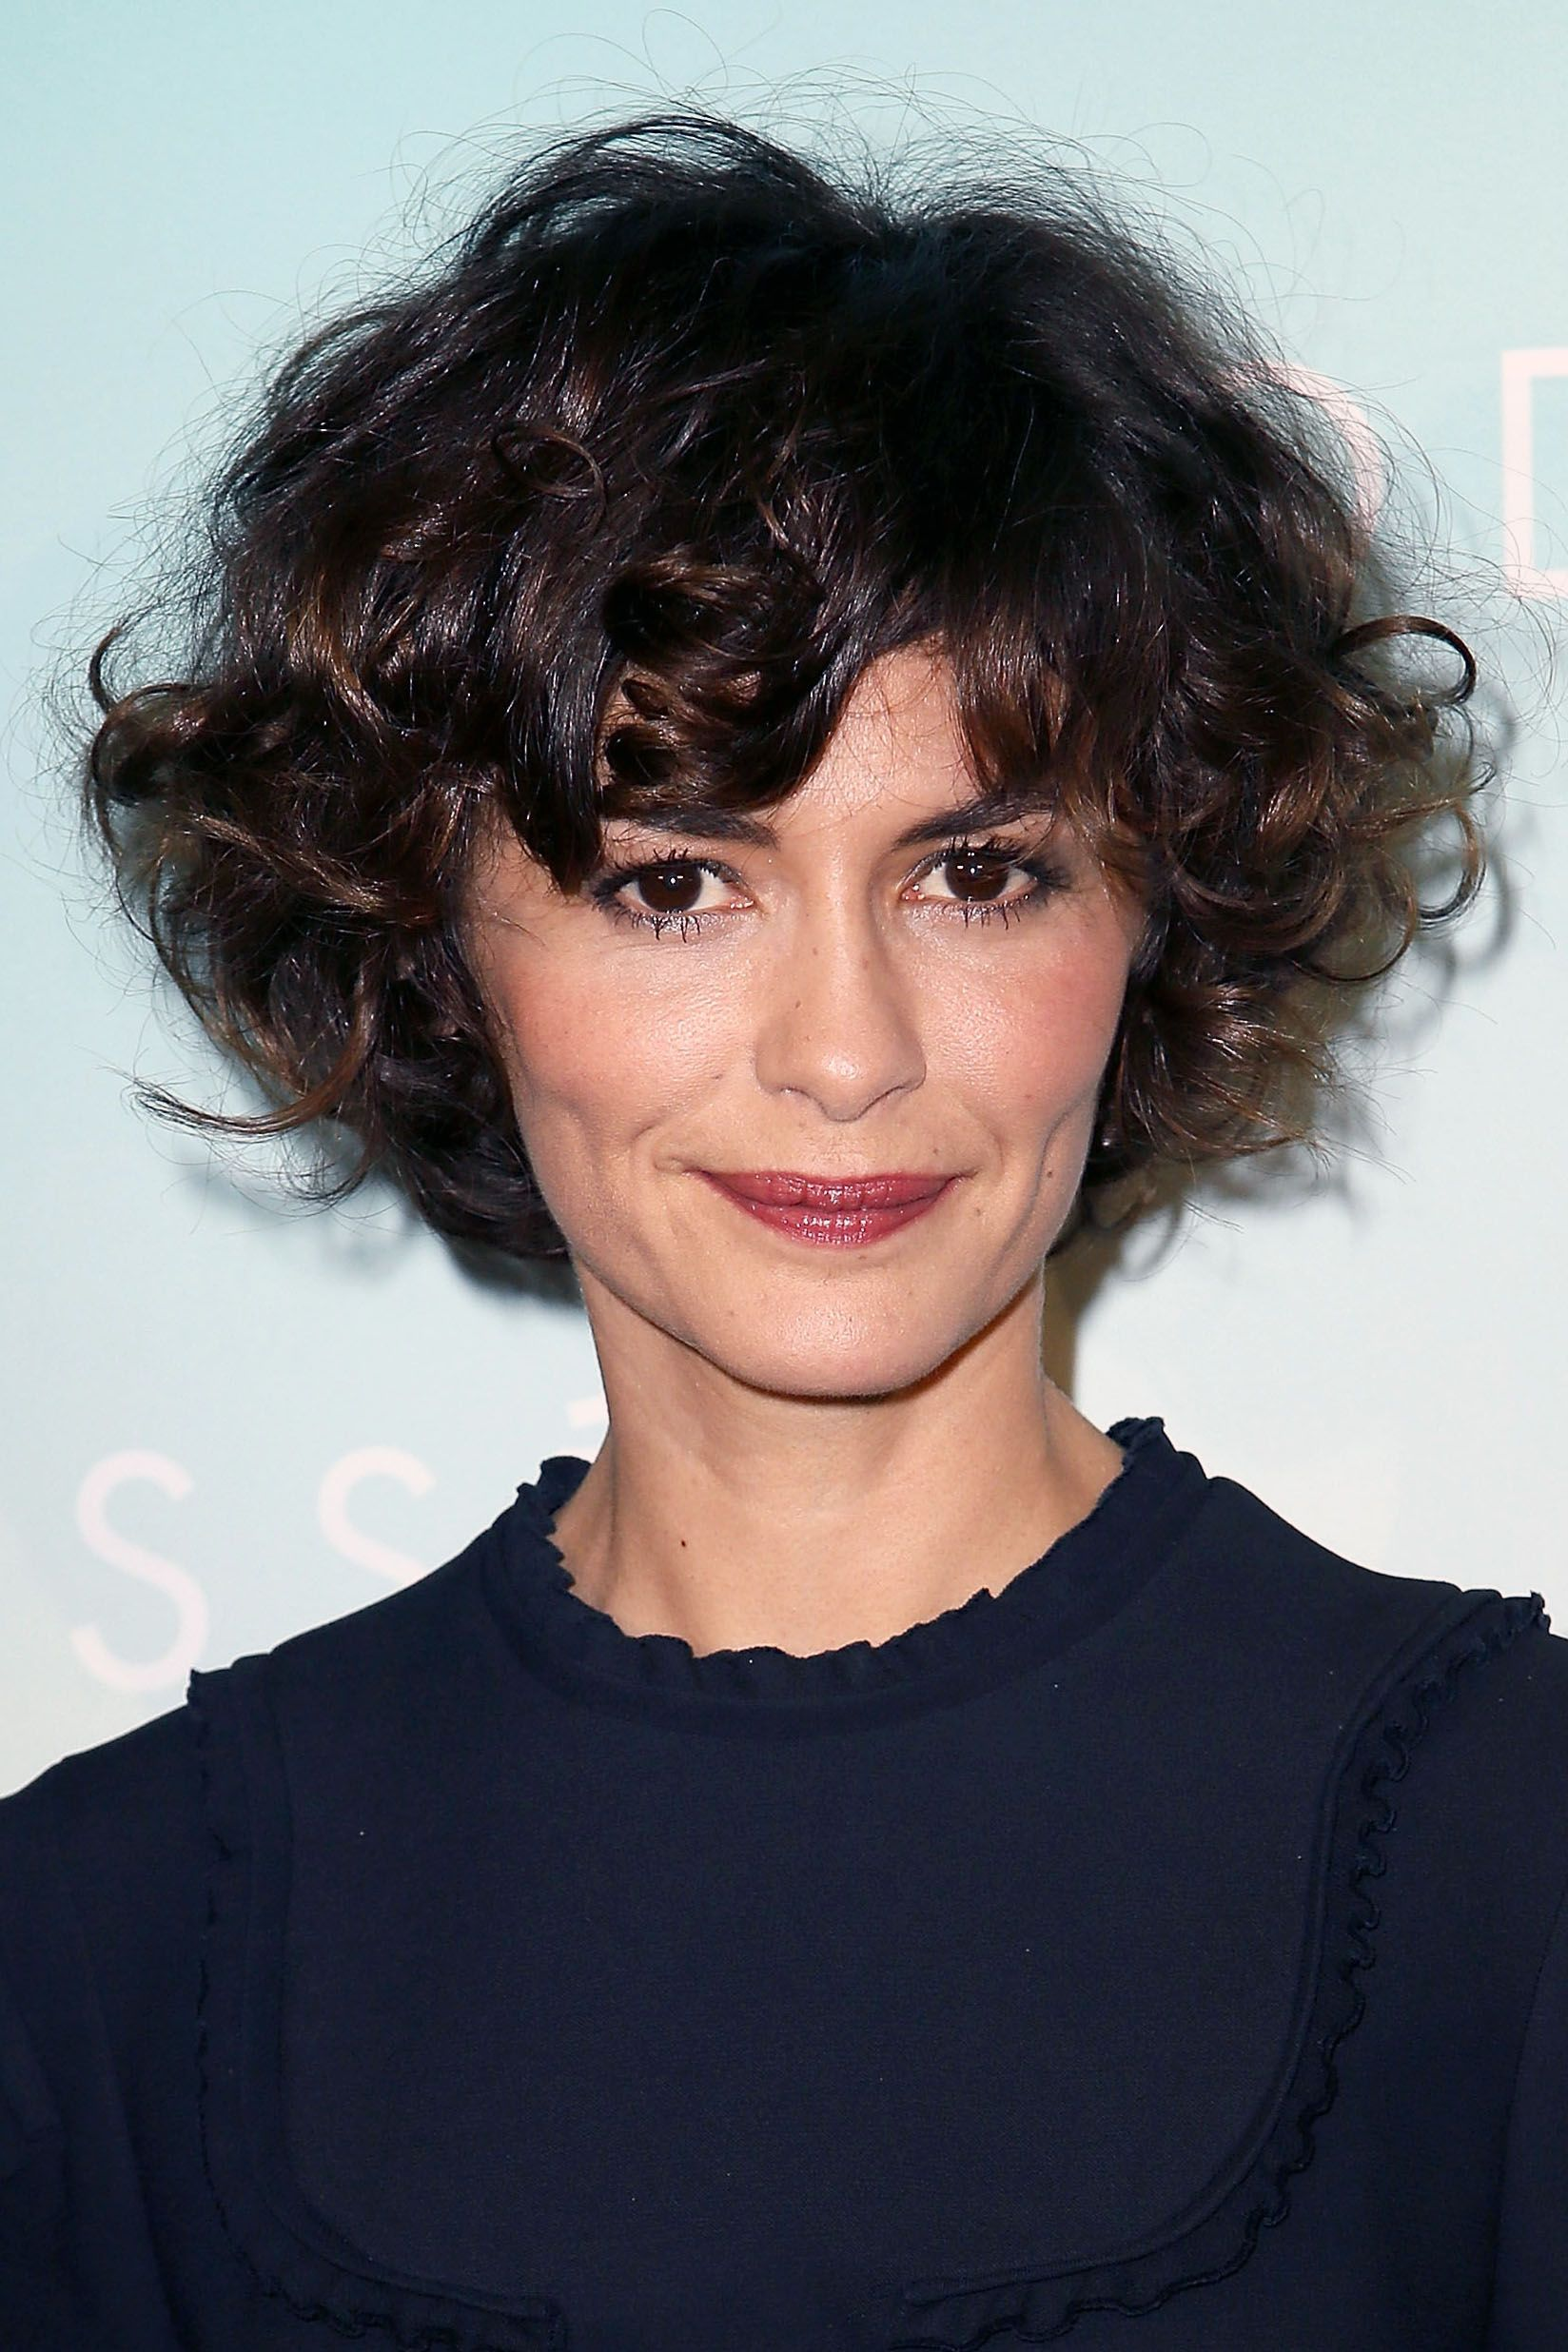 20 Best Short Curly Hairstyles 2020 Cute Short Haircuts For